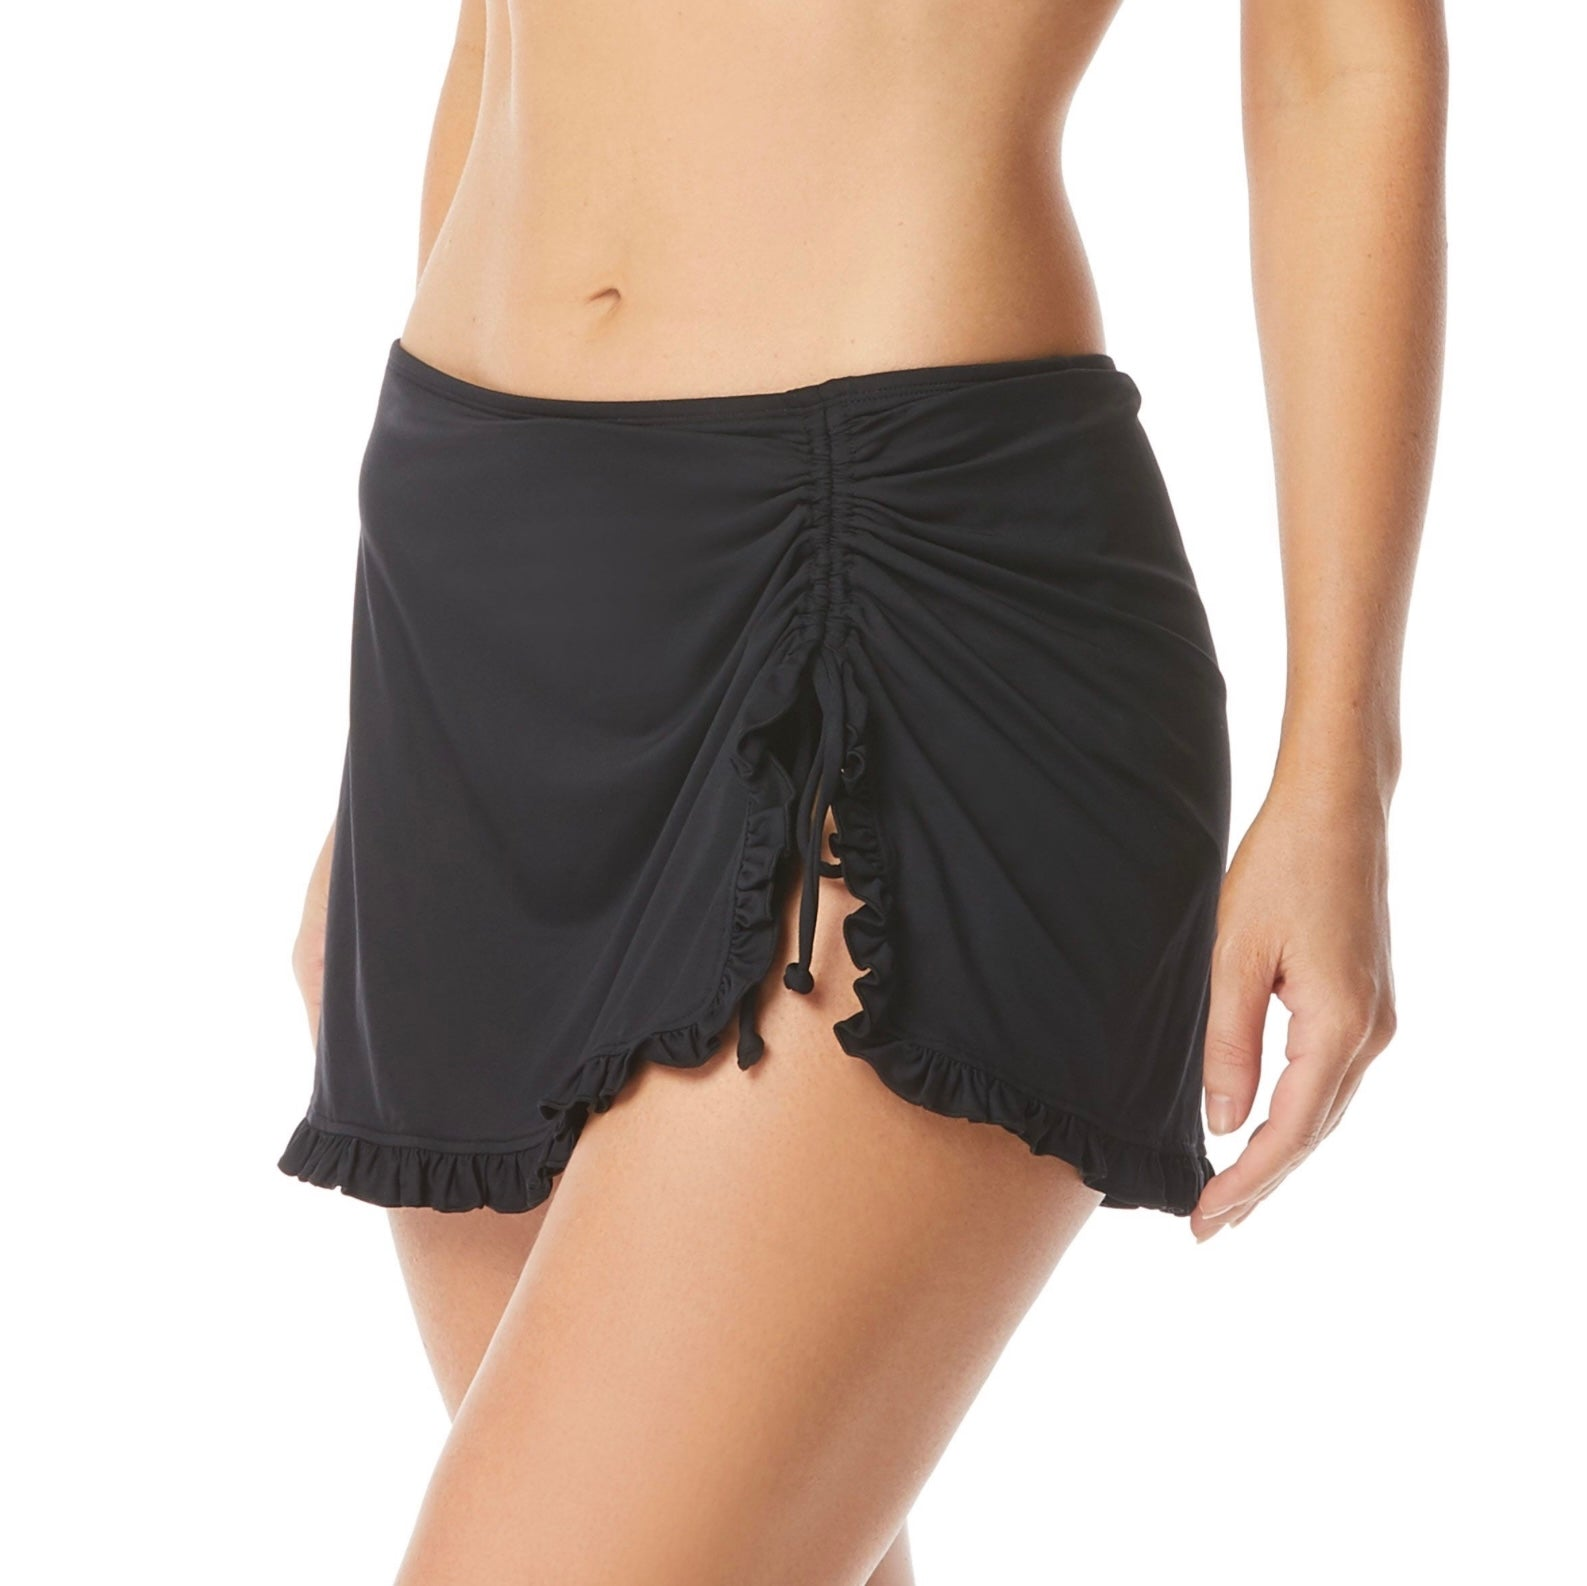 Beach House Tess Swim Skirt - Beach Solids SKU H58742 BLACK & NAVY